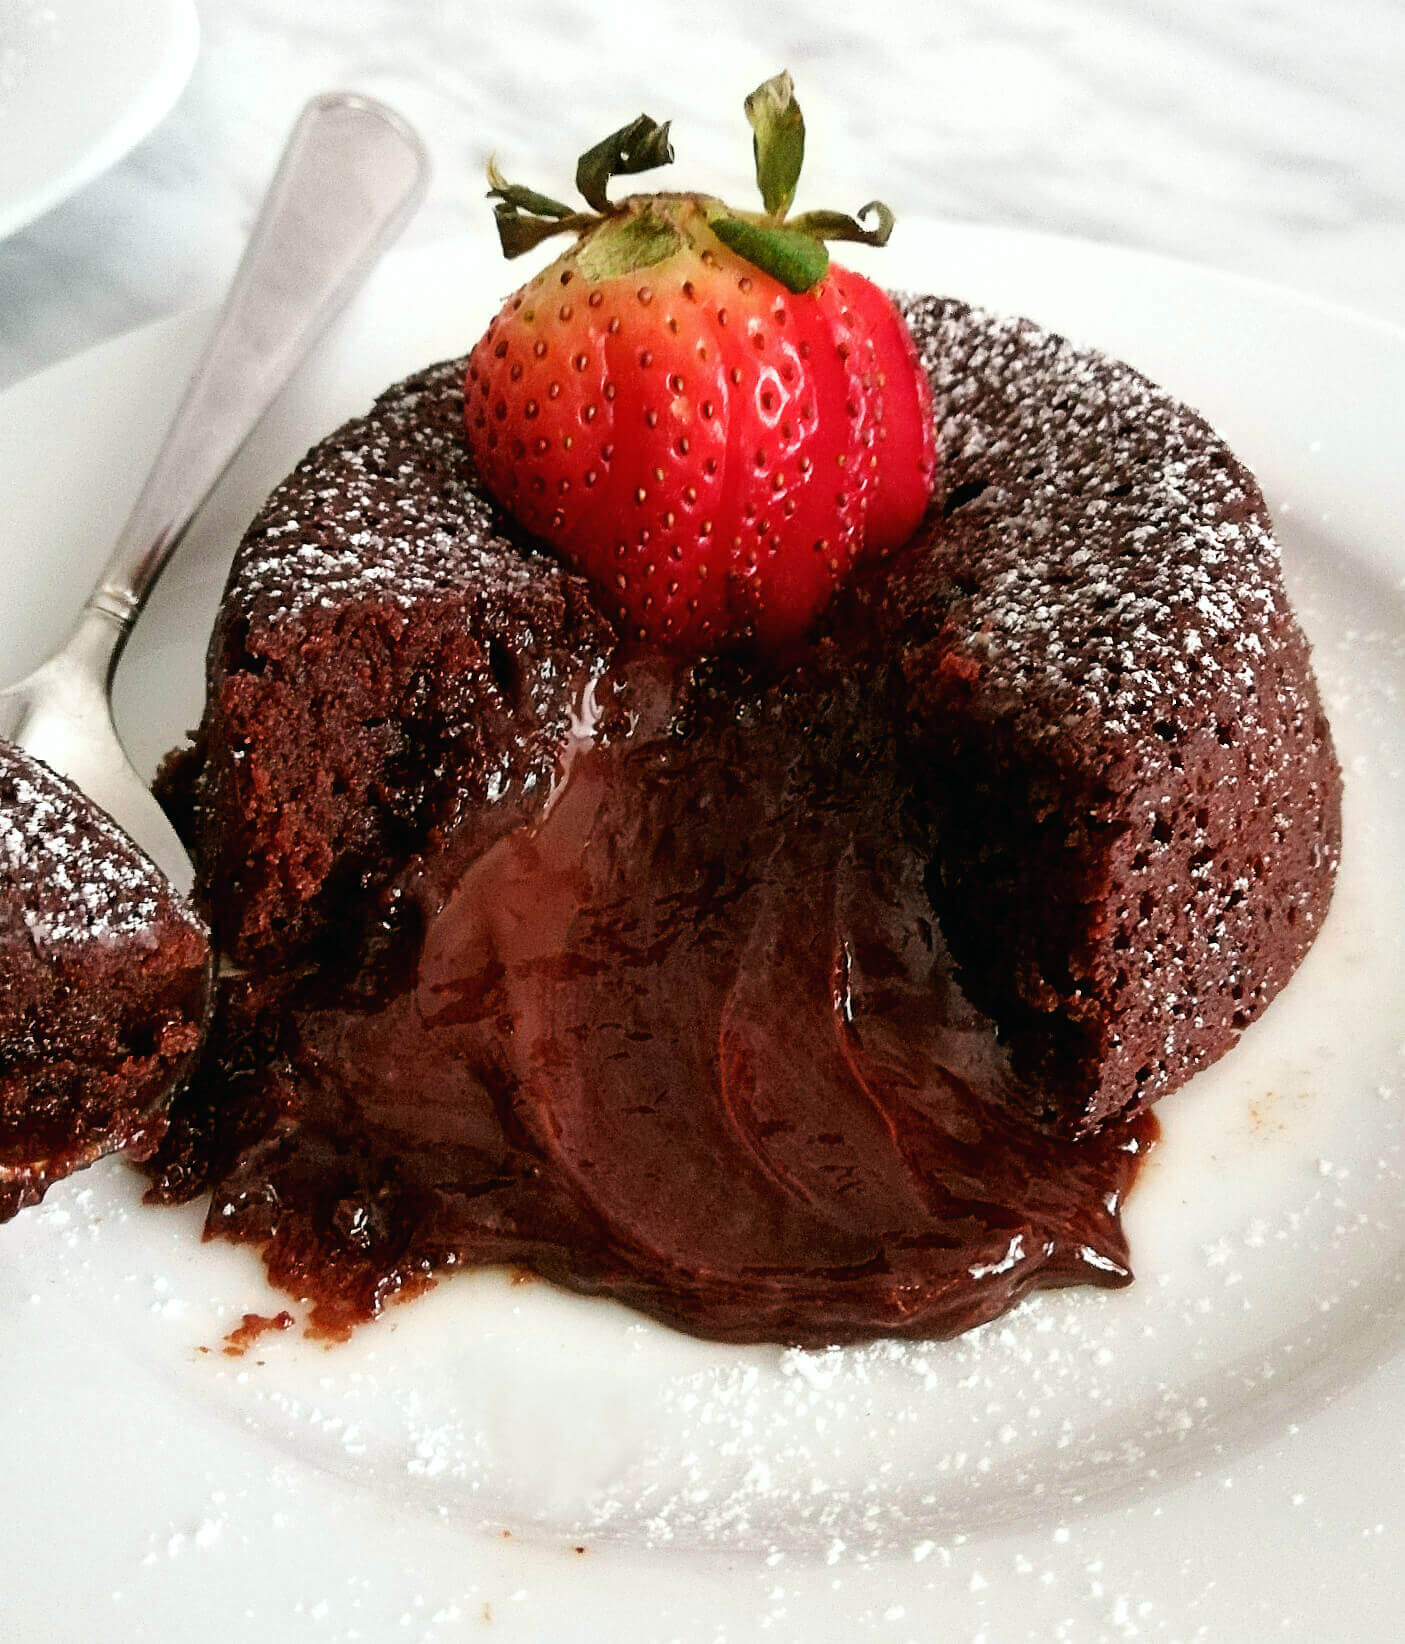 Chocolate Lava Cake for Two